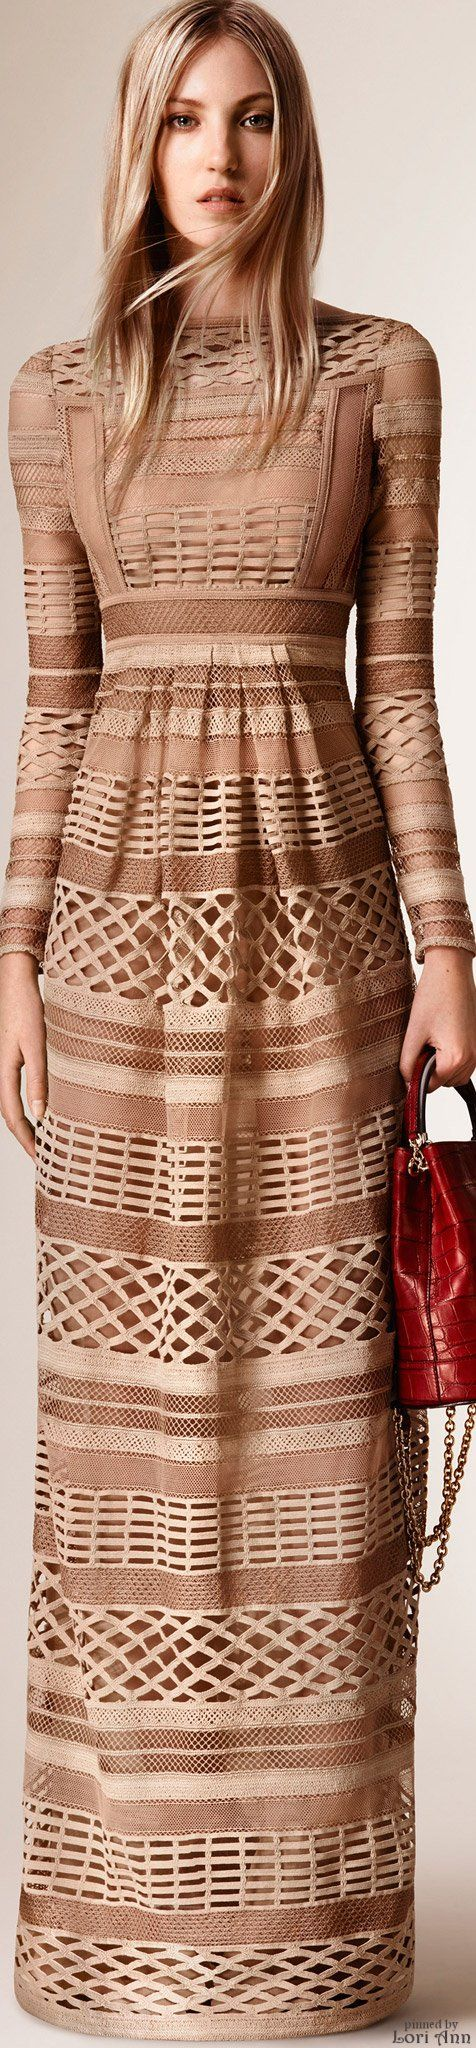 Burberry Prorsum Resort 2016